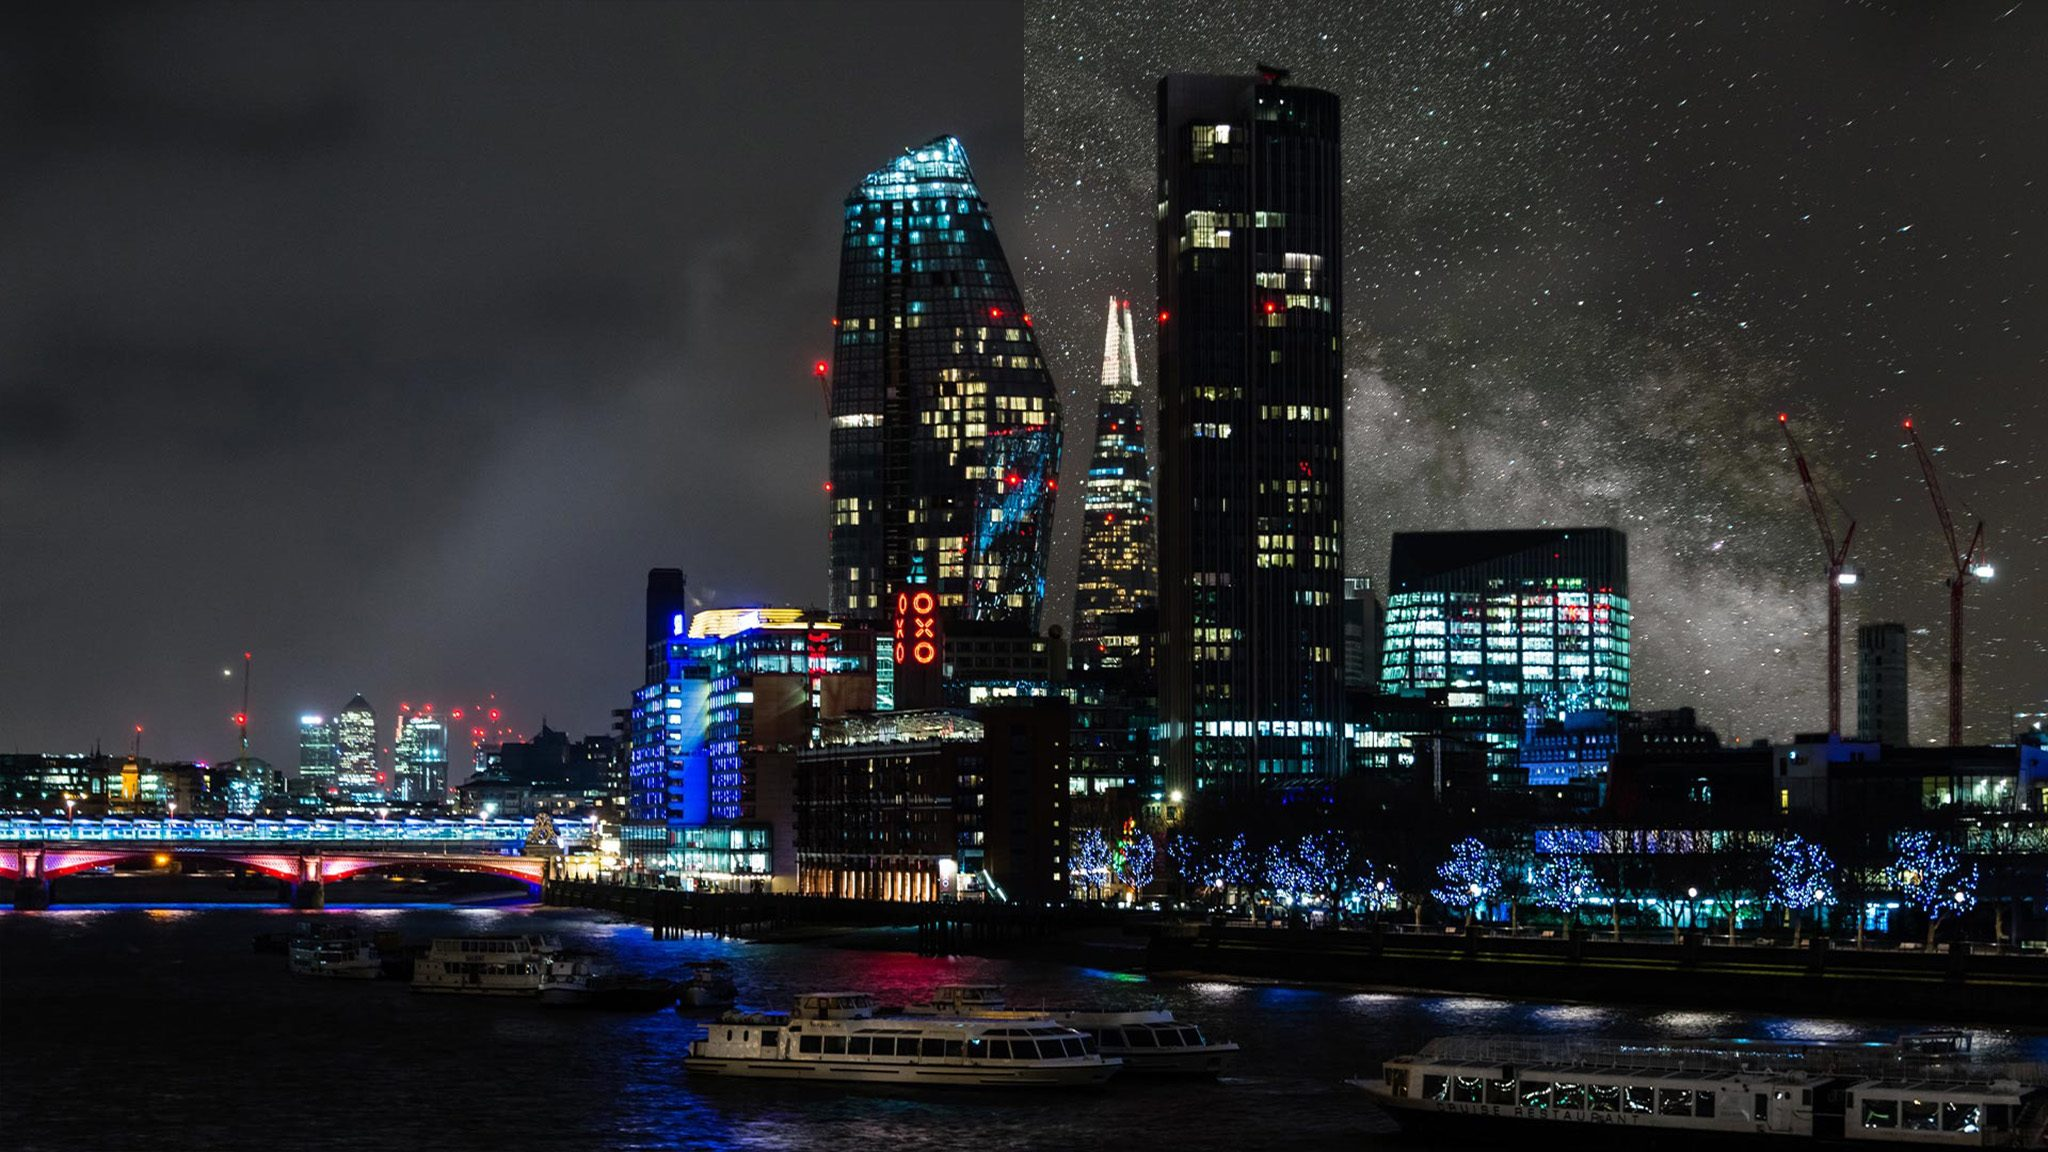 London United Kngdom light pollution city